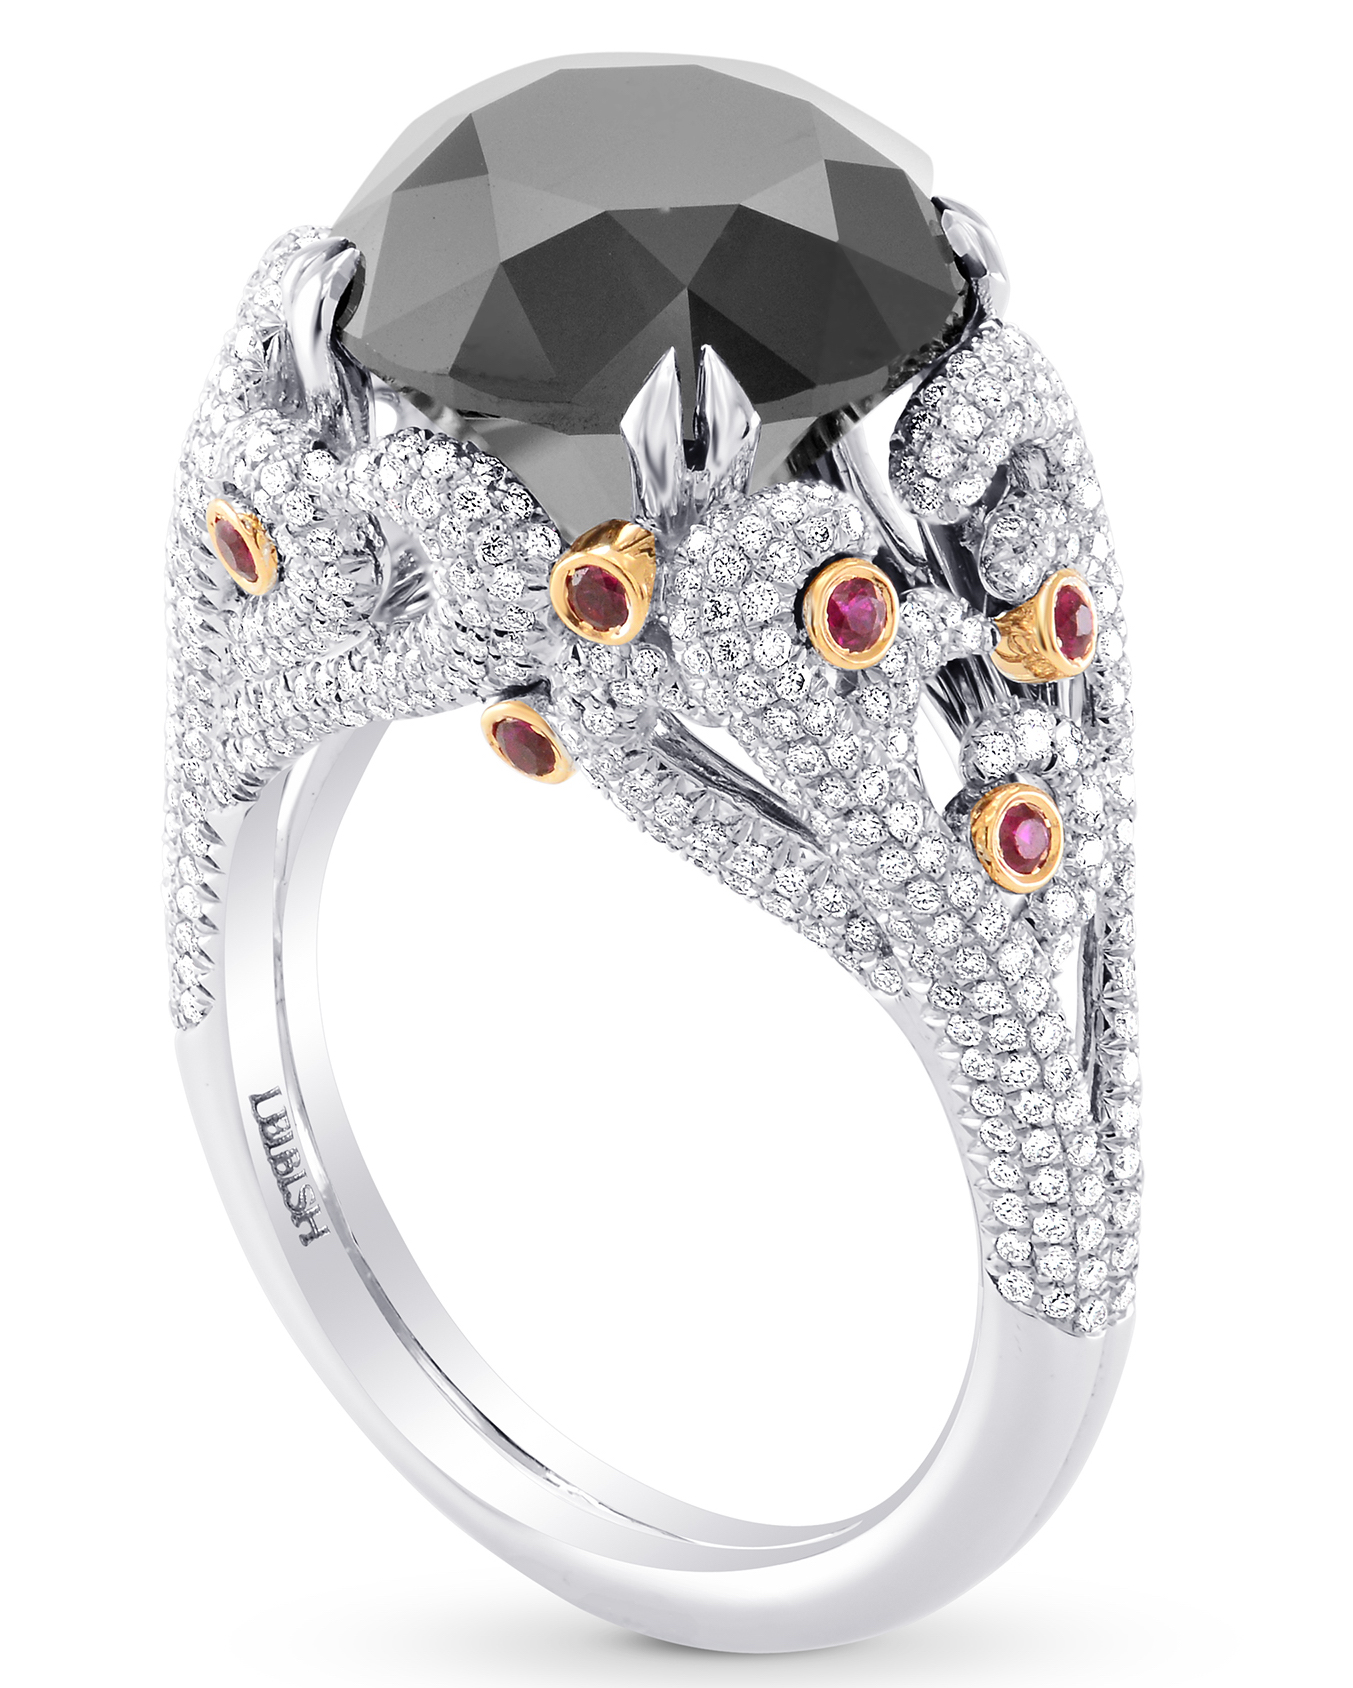 Leibish and Co. black diamond ring | JCK On Your Market